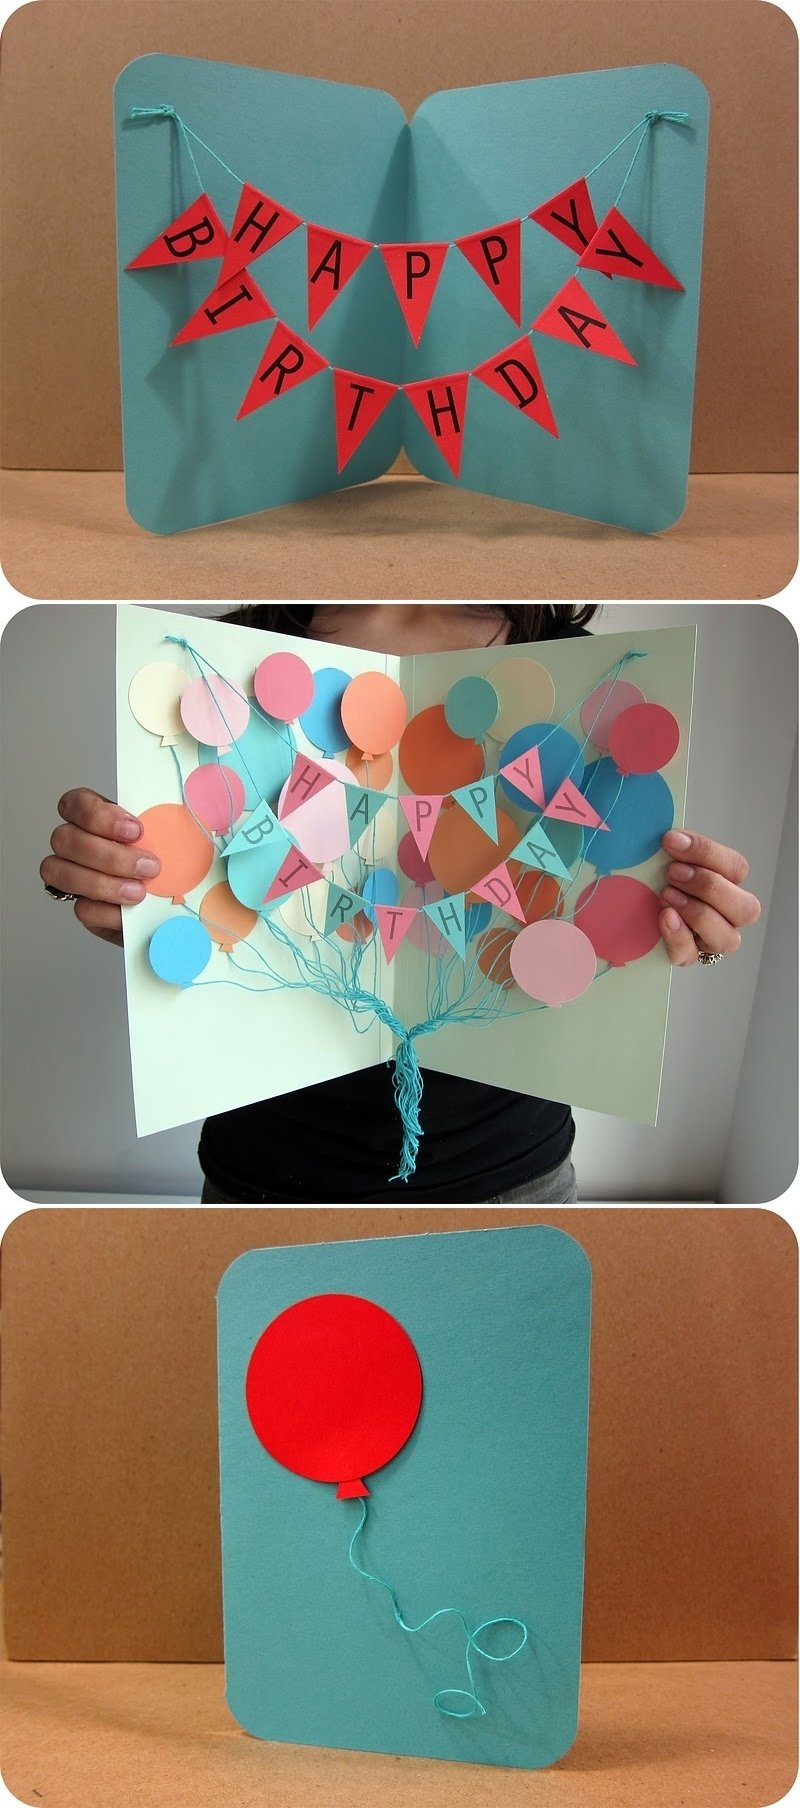 10 Unique Ideas For Handmade Birthday Cards diy projects crafts happy birthday cards happy birthday and 2021